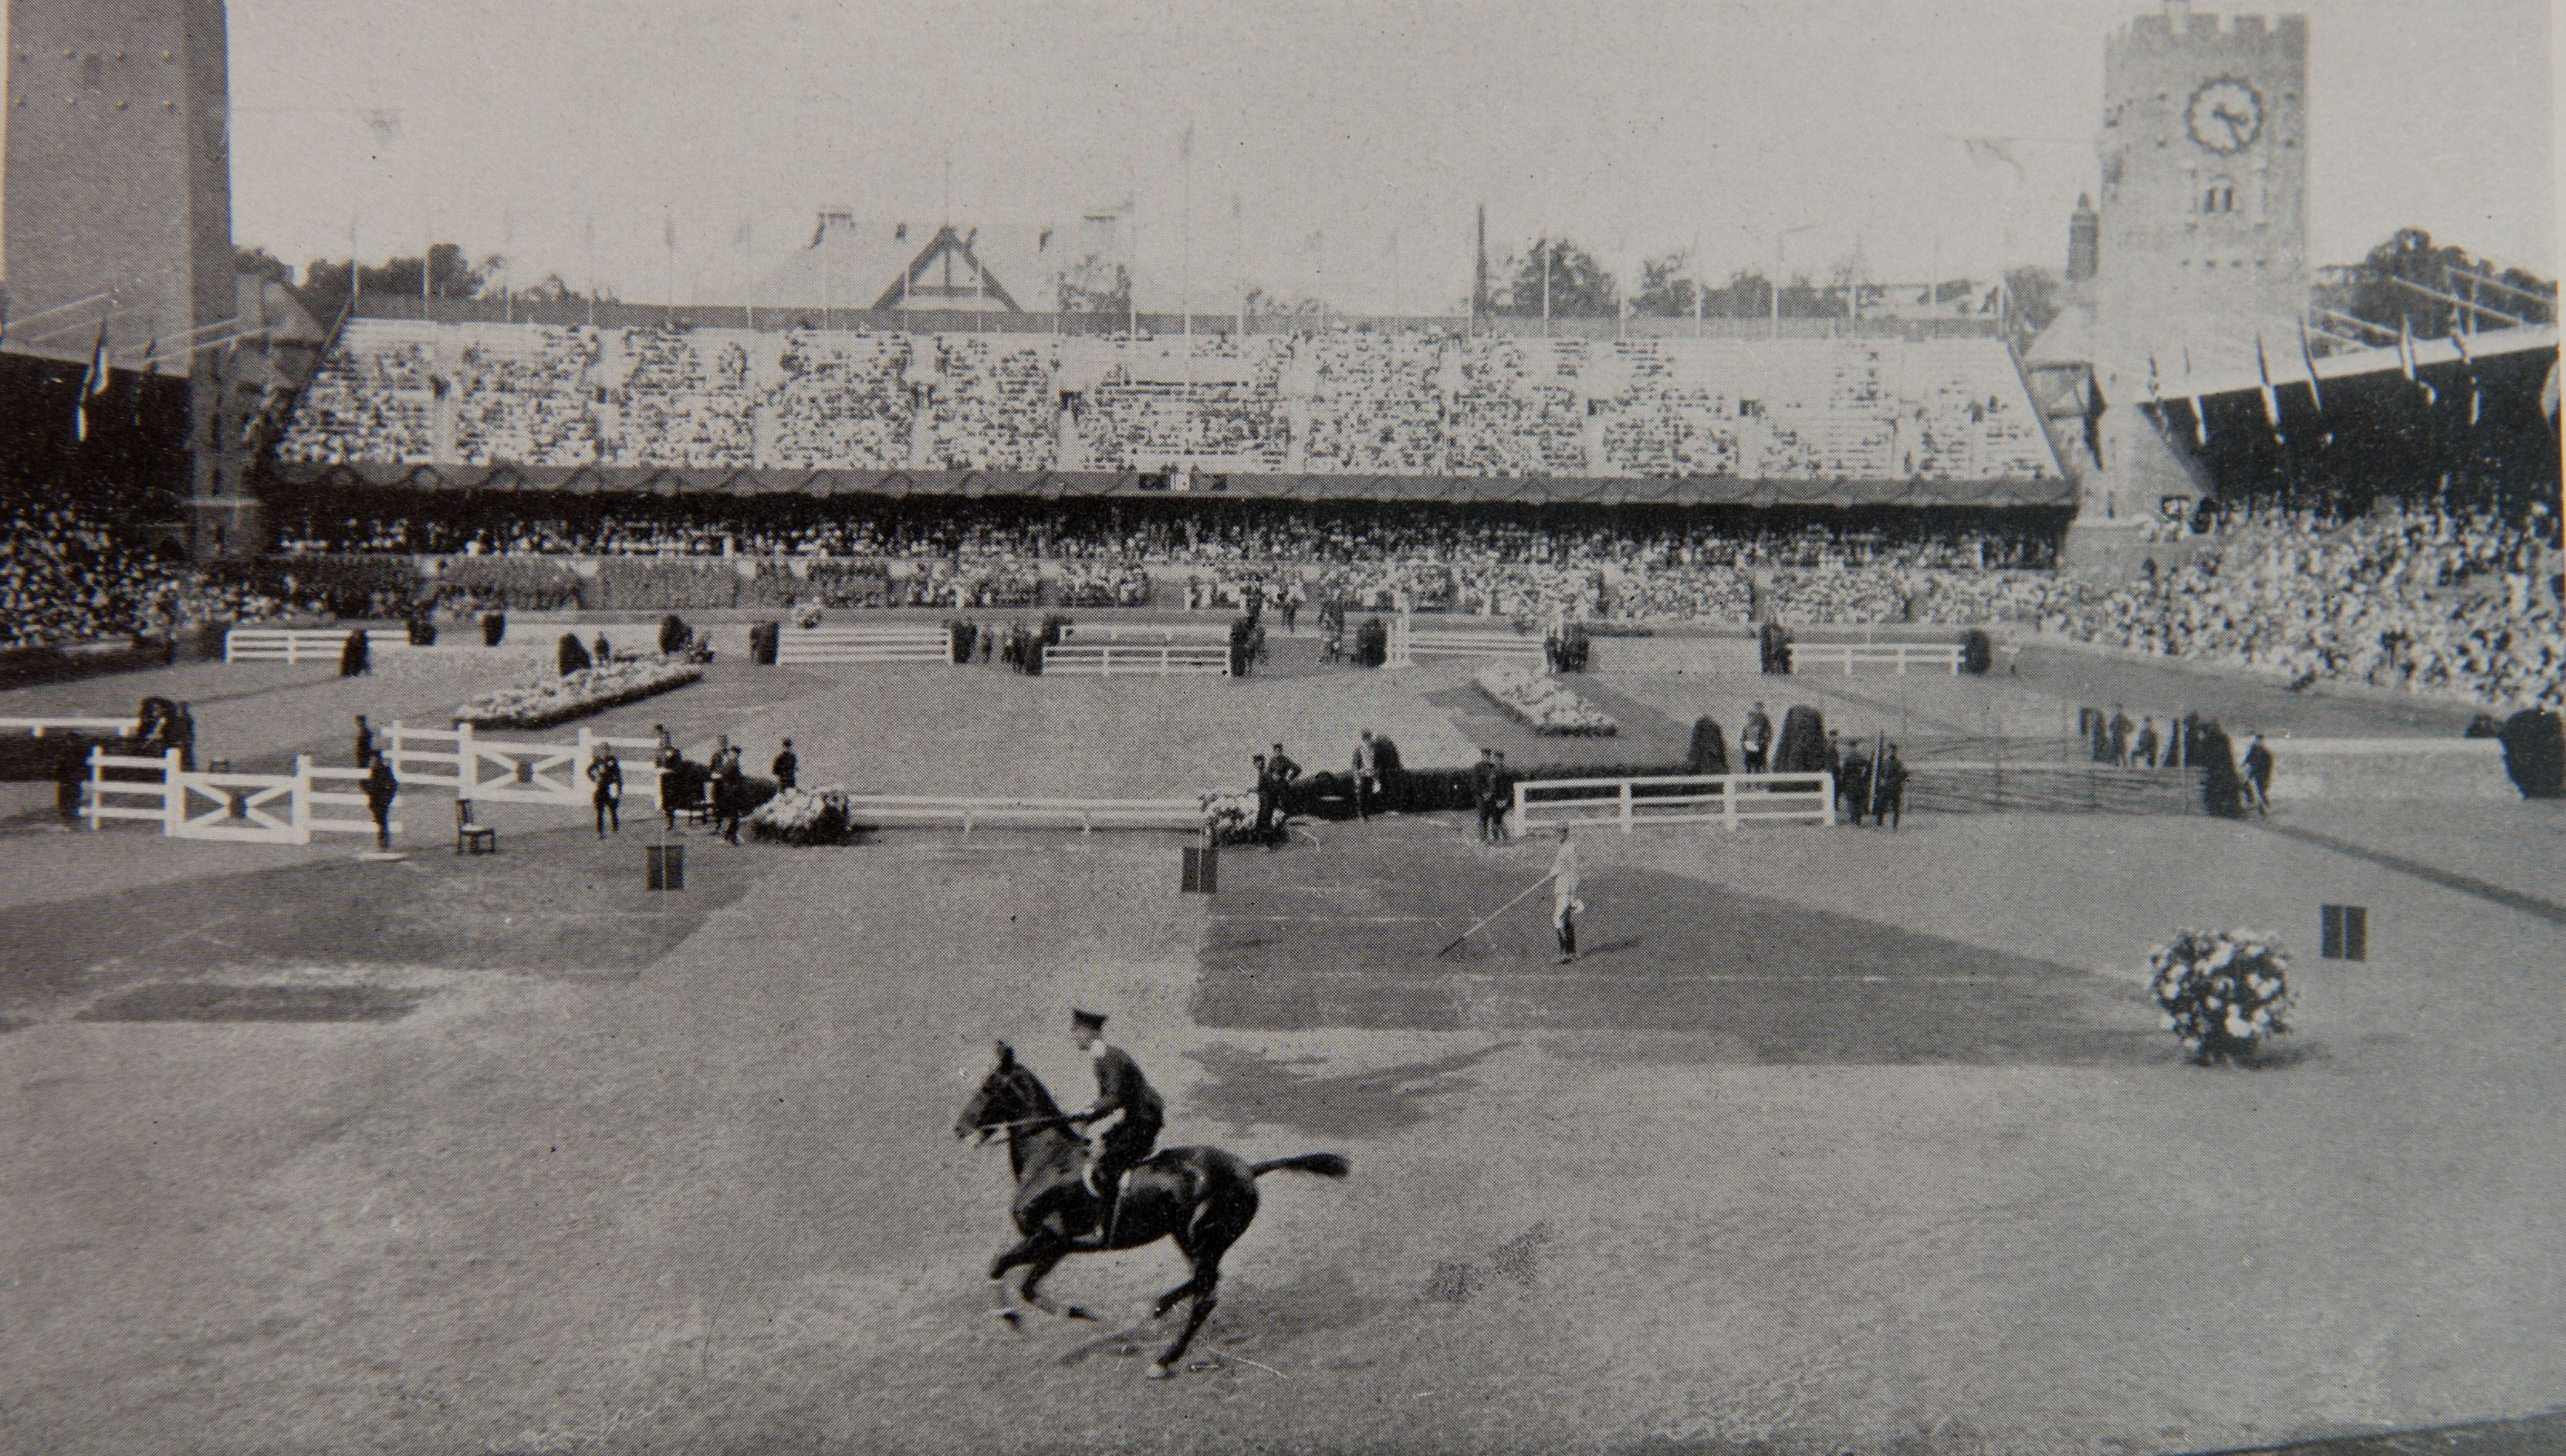 1912 Olympic Show Jumping Stadium in Stockholm, the first time equestrian events were held in the modern Olympics. (FEI History Hub)